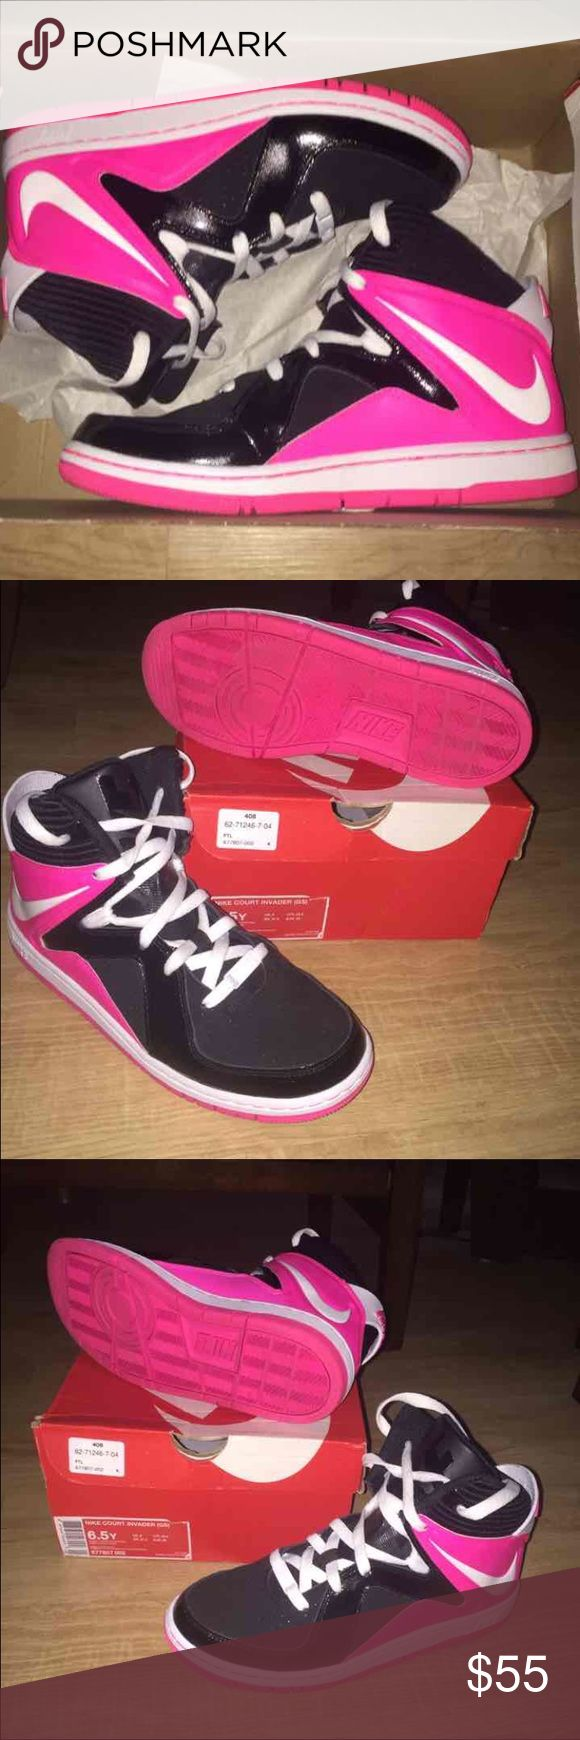 🏀 Nike Court Invader Grade School 6.5 Women's 8 NO TRADES.  - Nike Court Invader Basketball Shoes (Mids)  - Grade School / Youth / Boy's / Girl's size 6.5 - Women's Size 8 - black, white, & hyper (hot) pink.  - EUC Only worn a few times for weight training at the gym. Not Jordan's. Will ship in original box. Reasonable offers welcome- cheaper on Ⓜ️. Nike Shoes Athletic Shoes